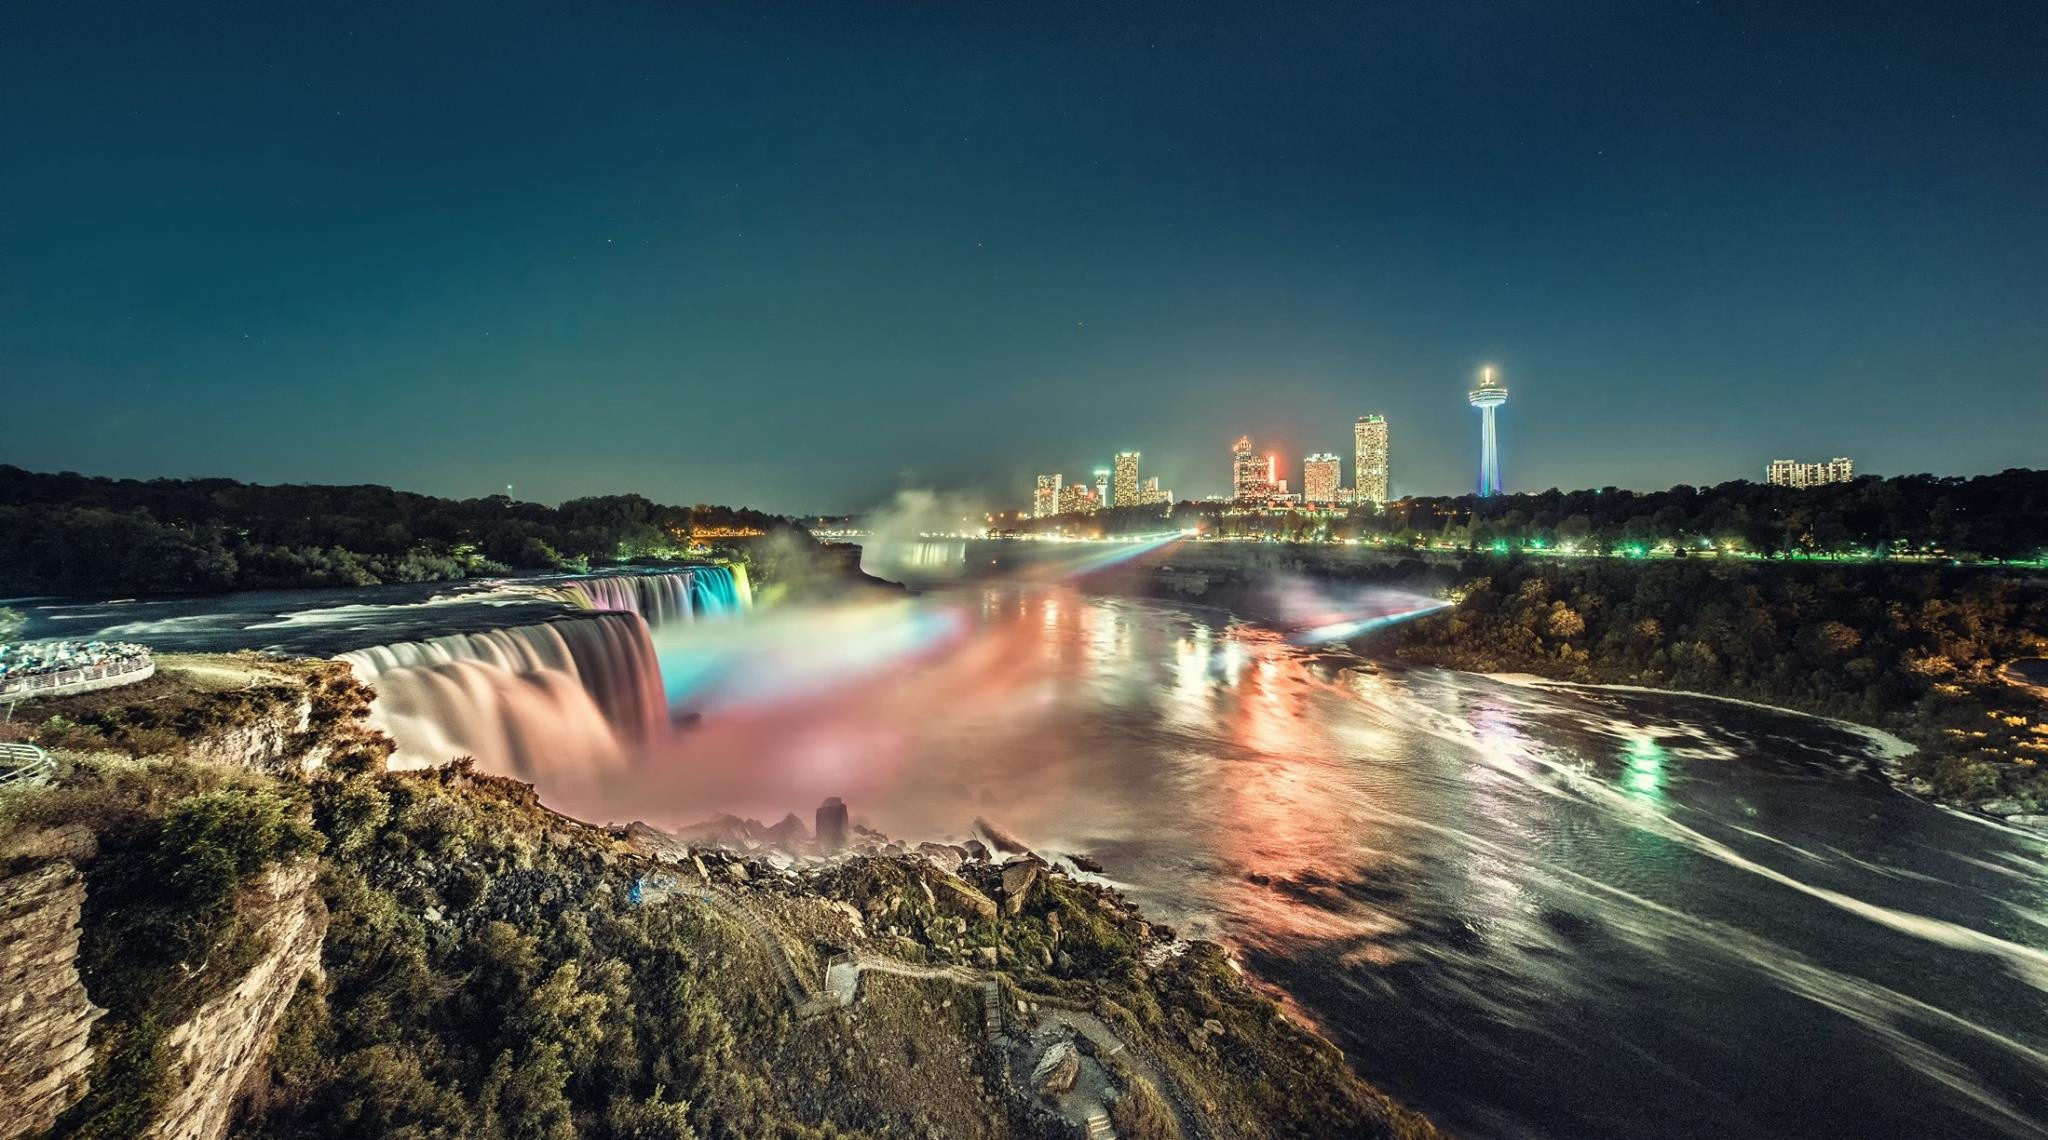 Animated Flowers Wallpapers Free Download Niagara Falls At Night Wallpaper Nature And Landscape